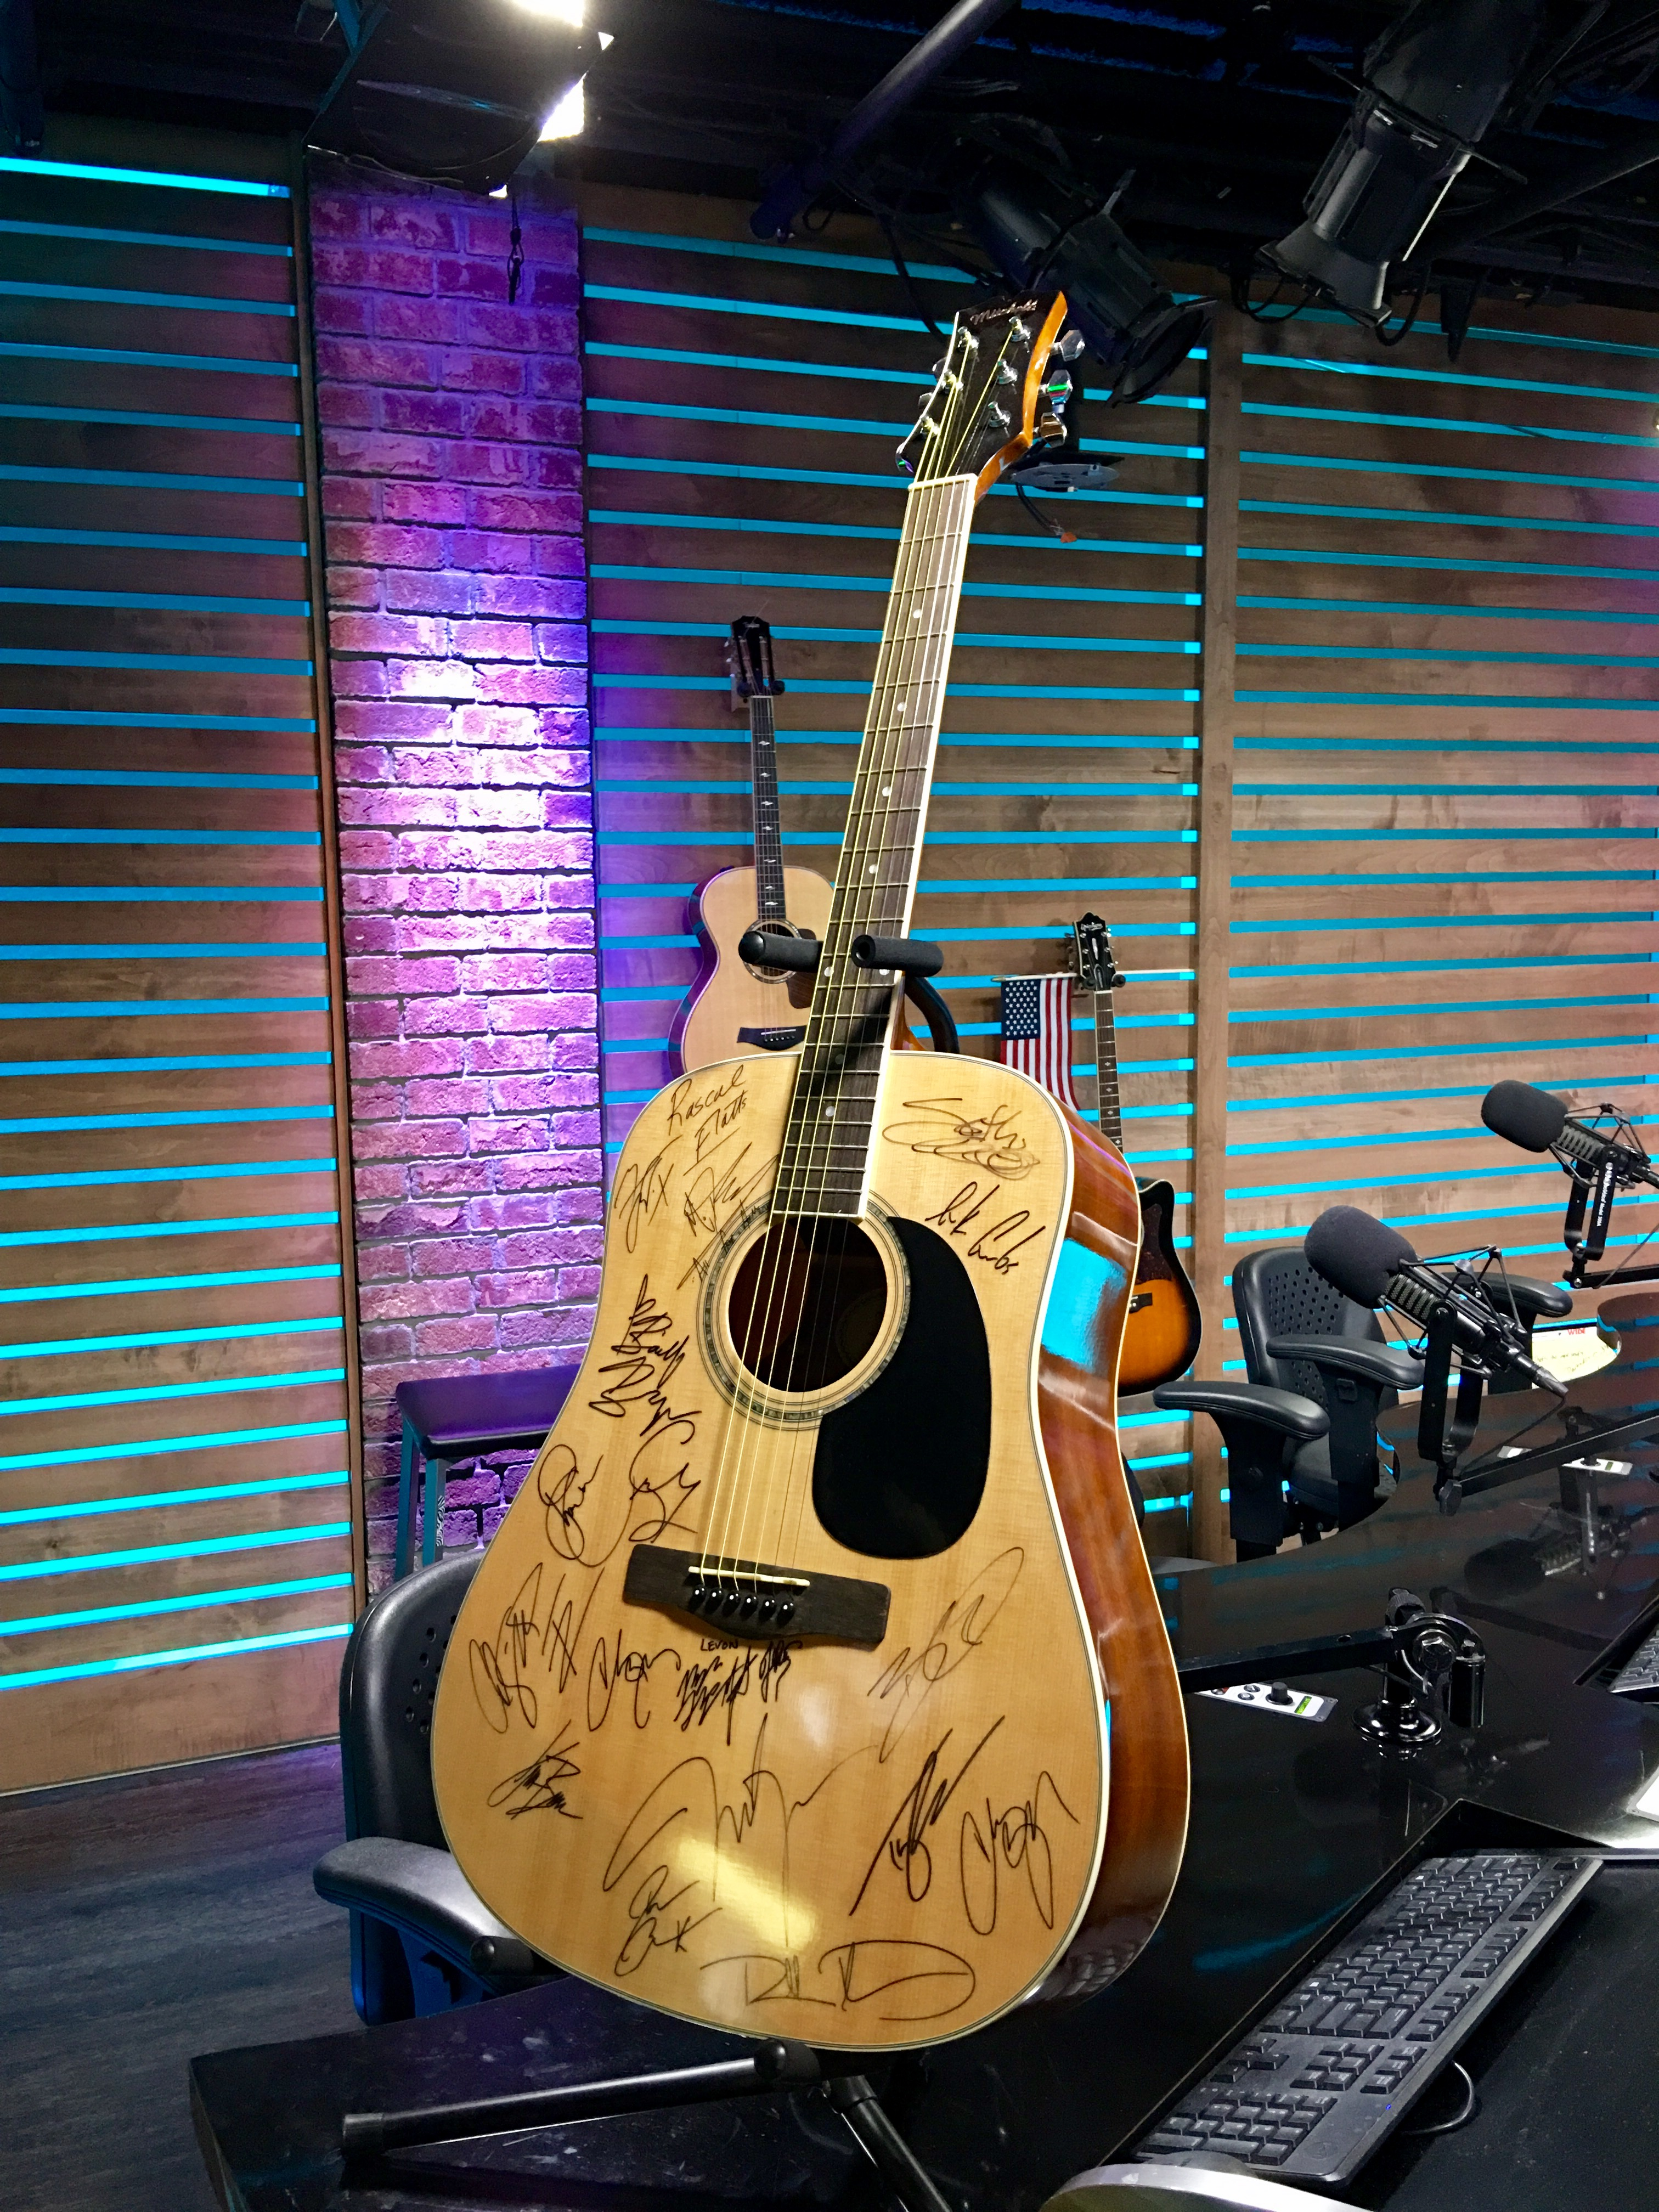 You Could Win a Guitar Signed by the Stars of Country Music